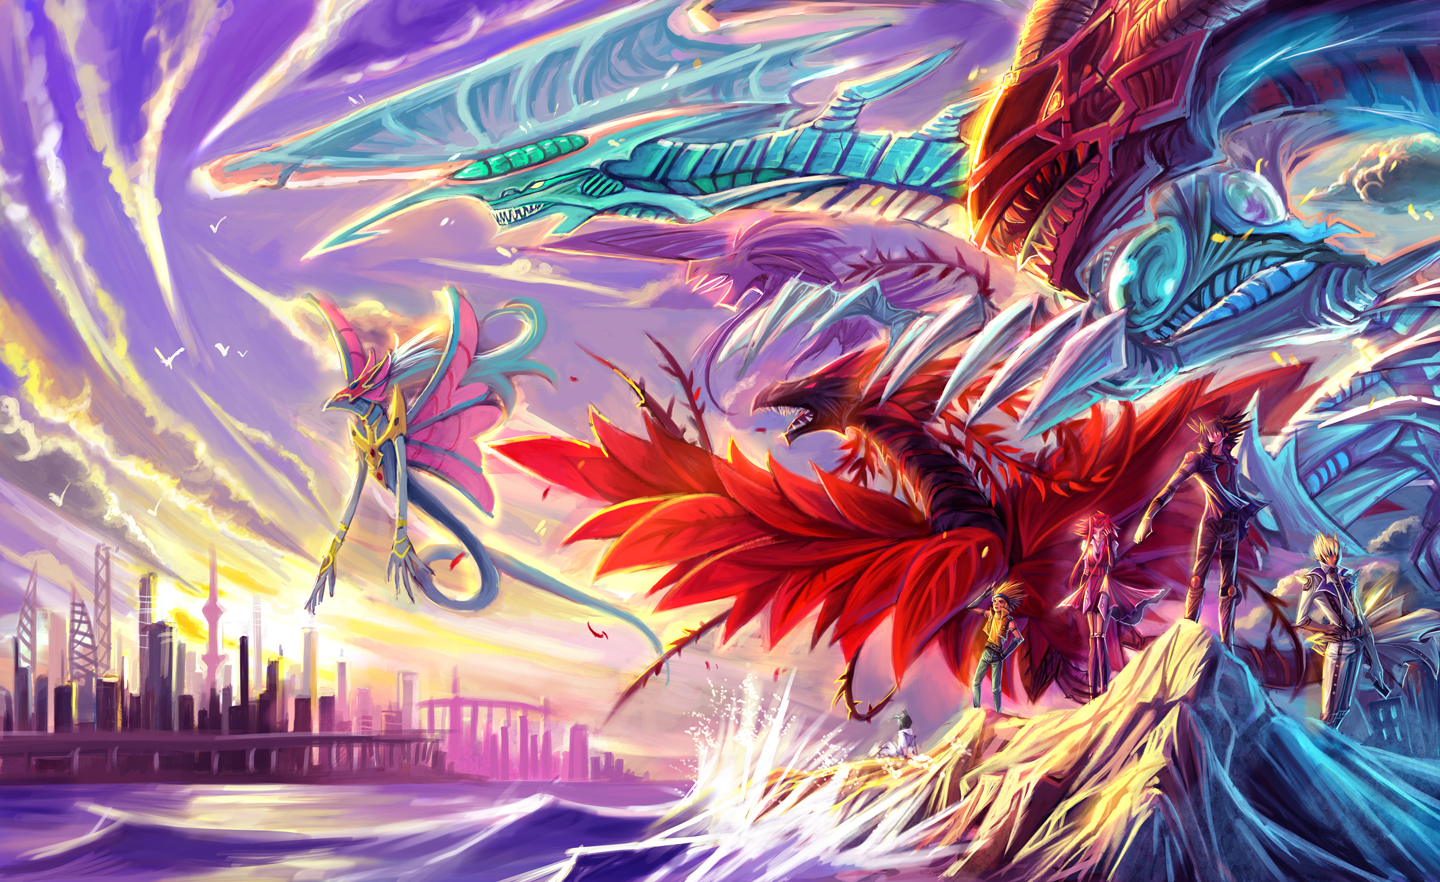 dragon black rose dragon black winged dragon city crow hogan dragon    Yugioh 5ds Dragon Wallpaper